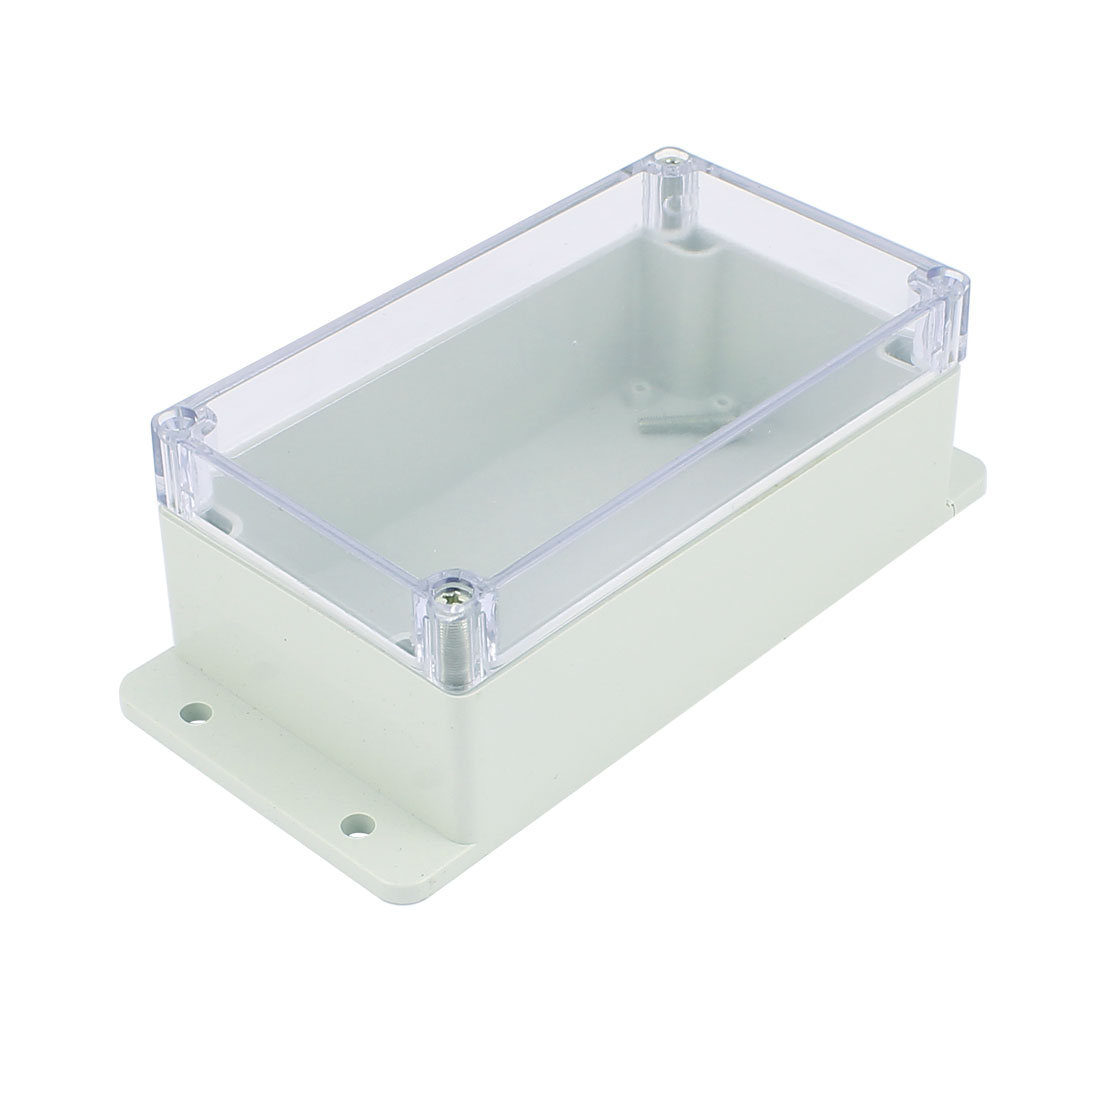 Dustproof IP65 Junction Box Case Terminal Connection Enclosure Adaptable 150mm x 82mm x 56mm